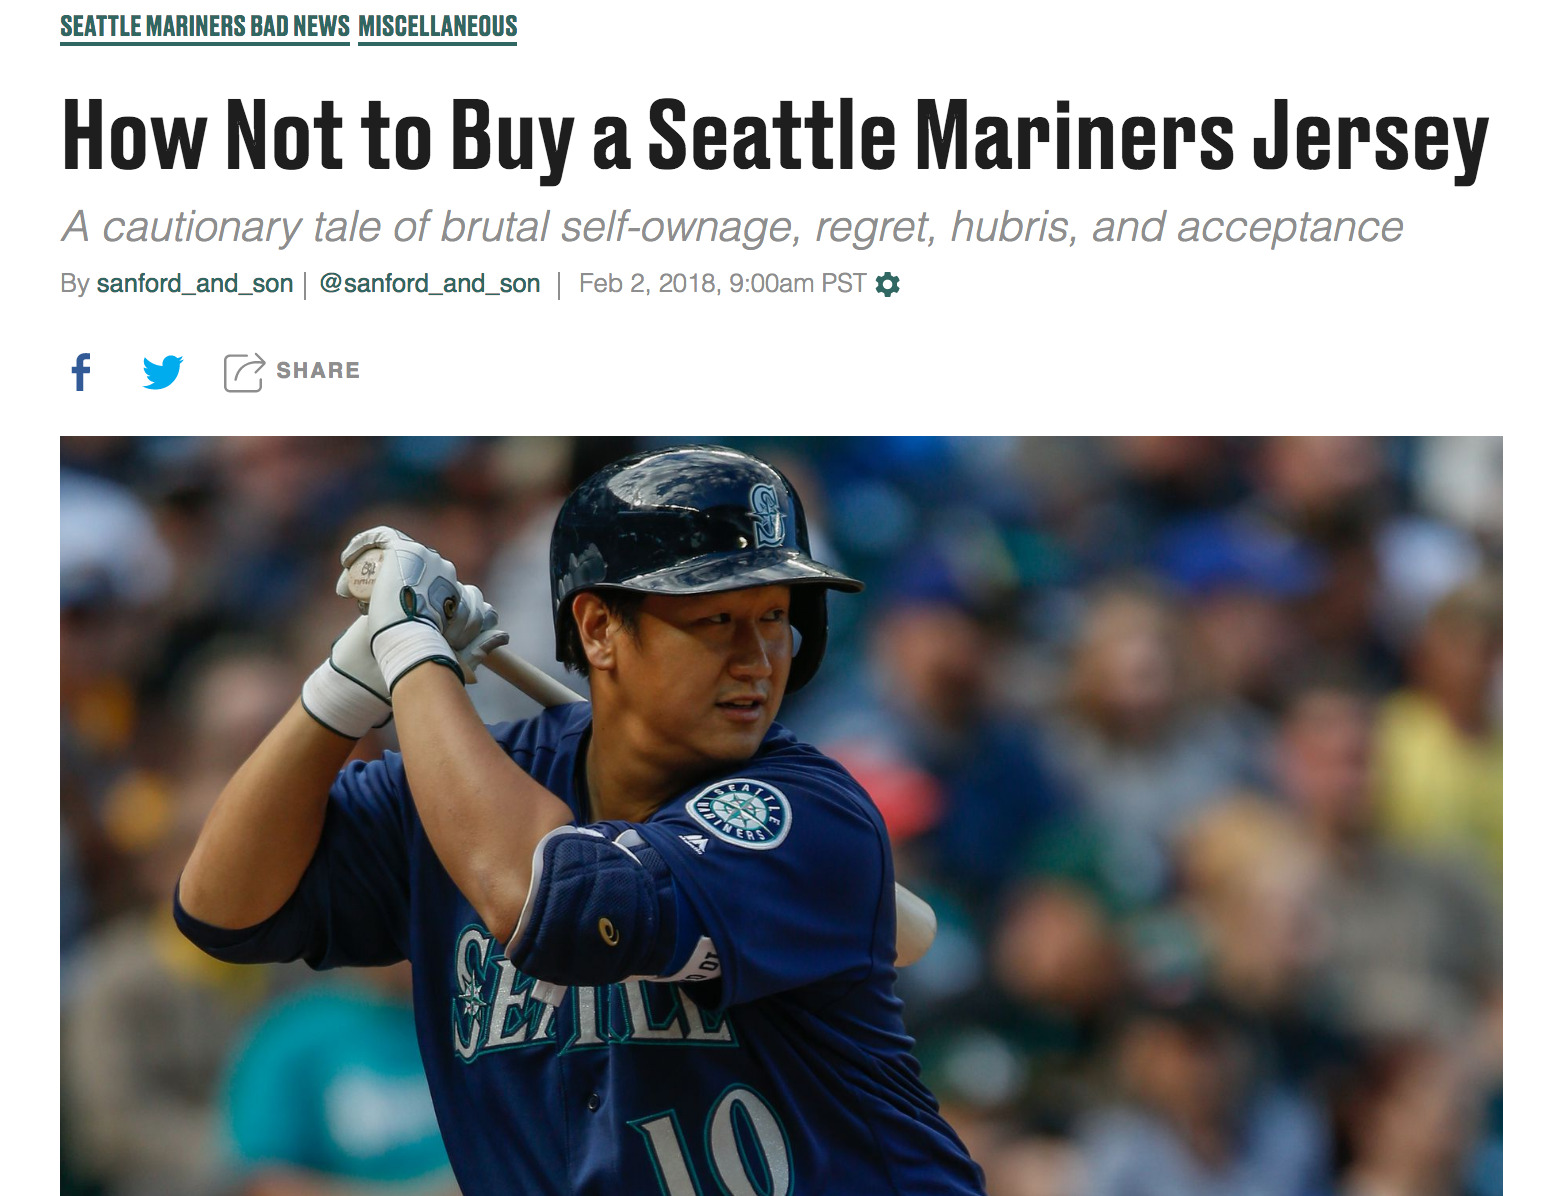 Screenshot-2018-2-25 How Not to Buy a Seattle Mariners Jersey.jpg